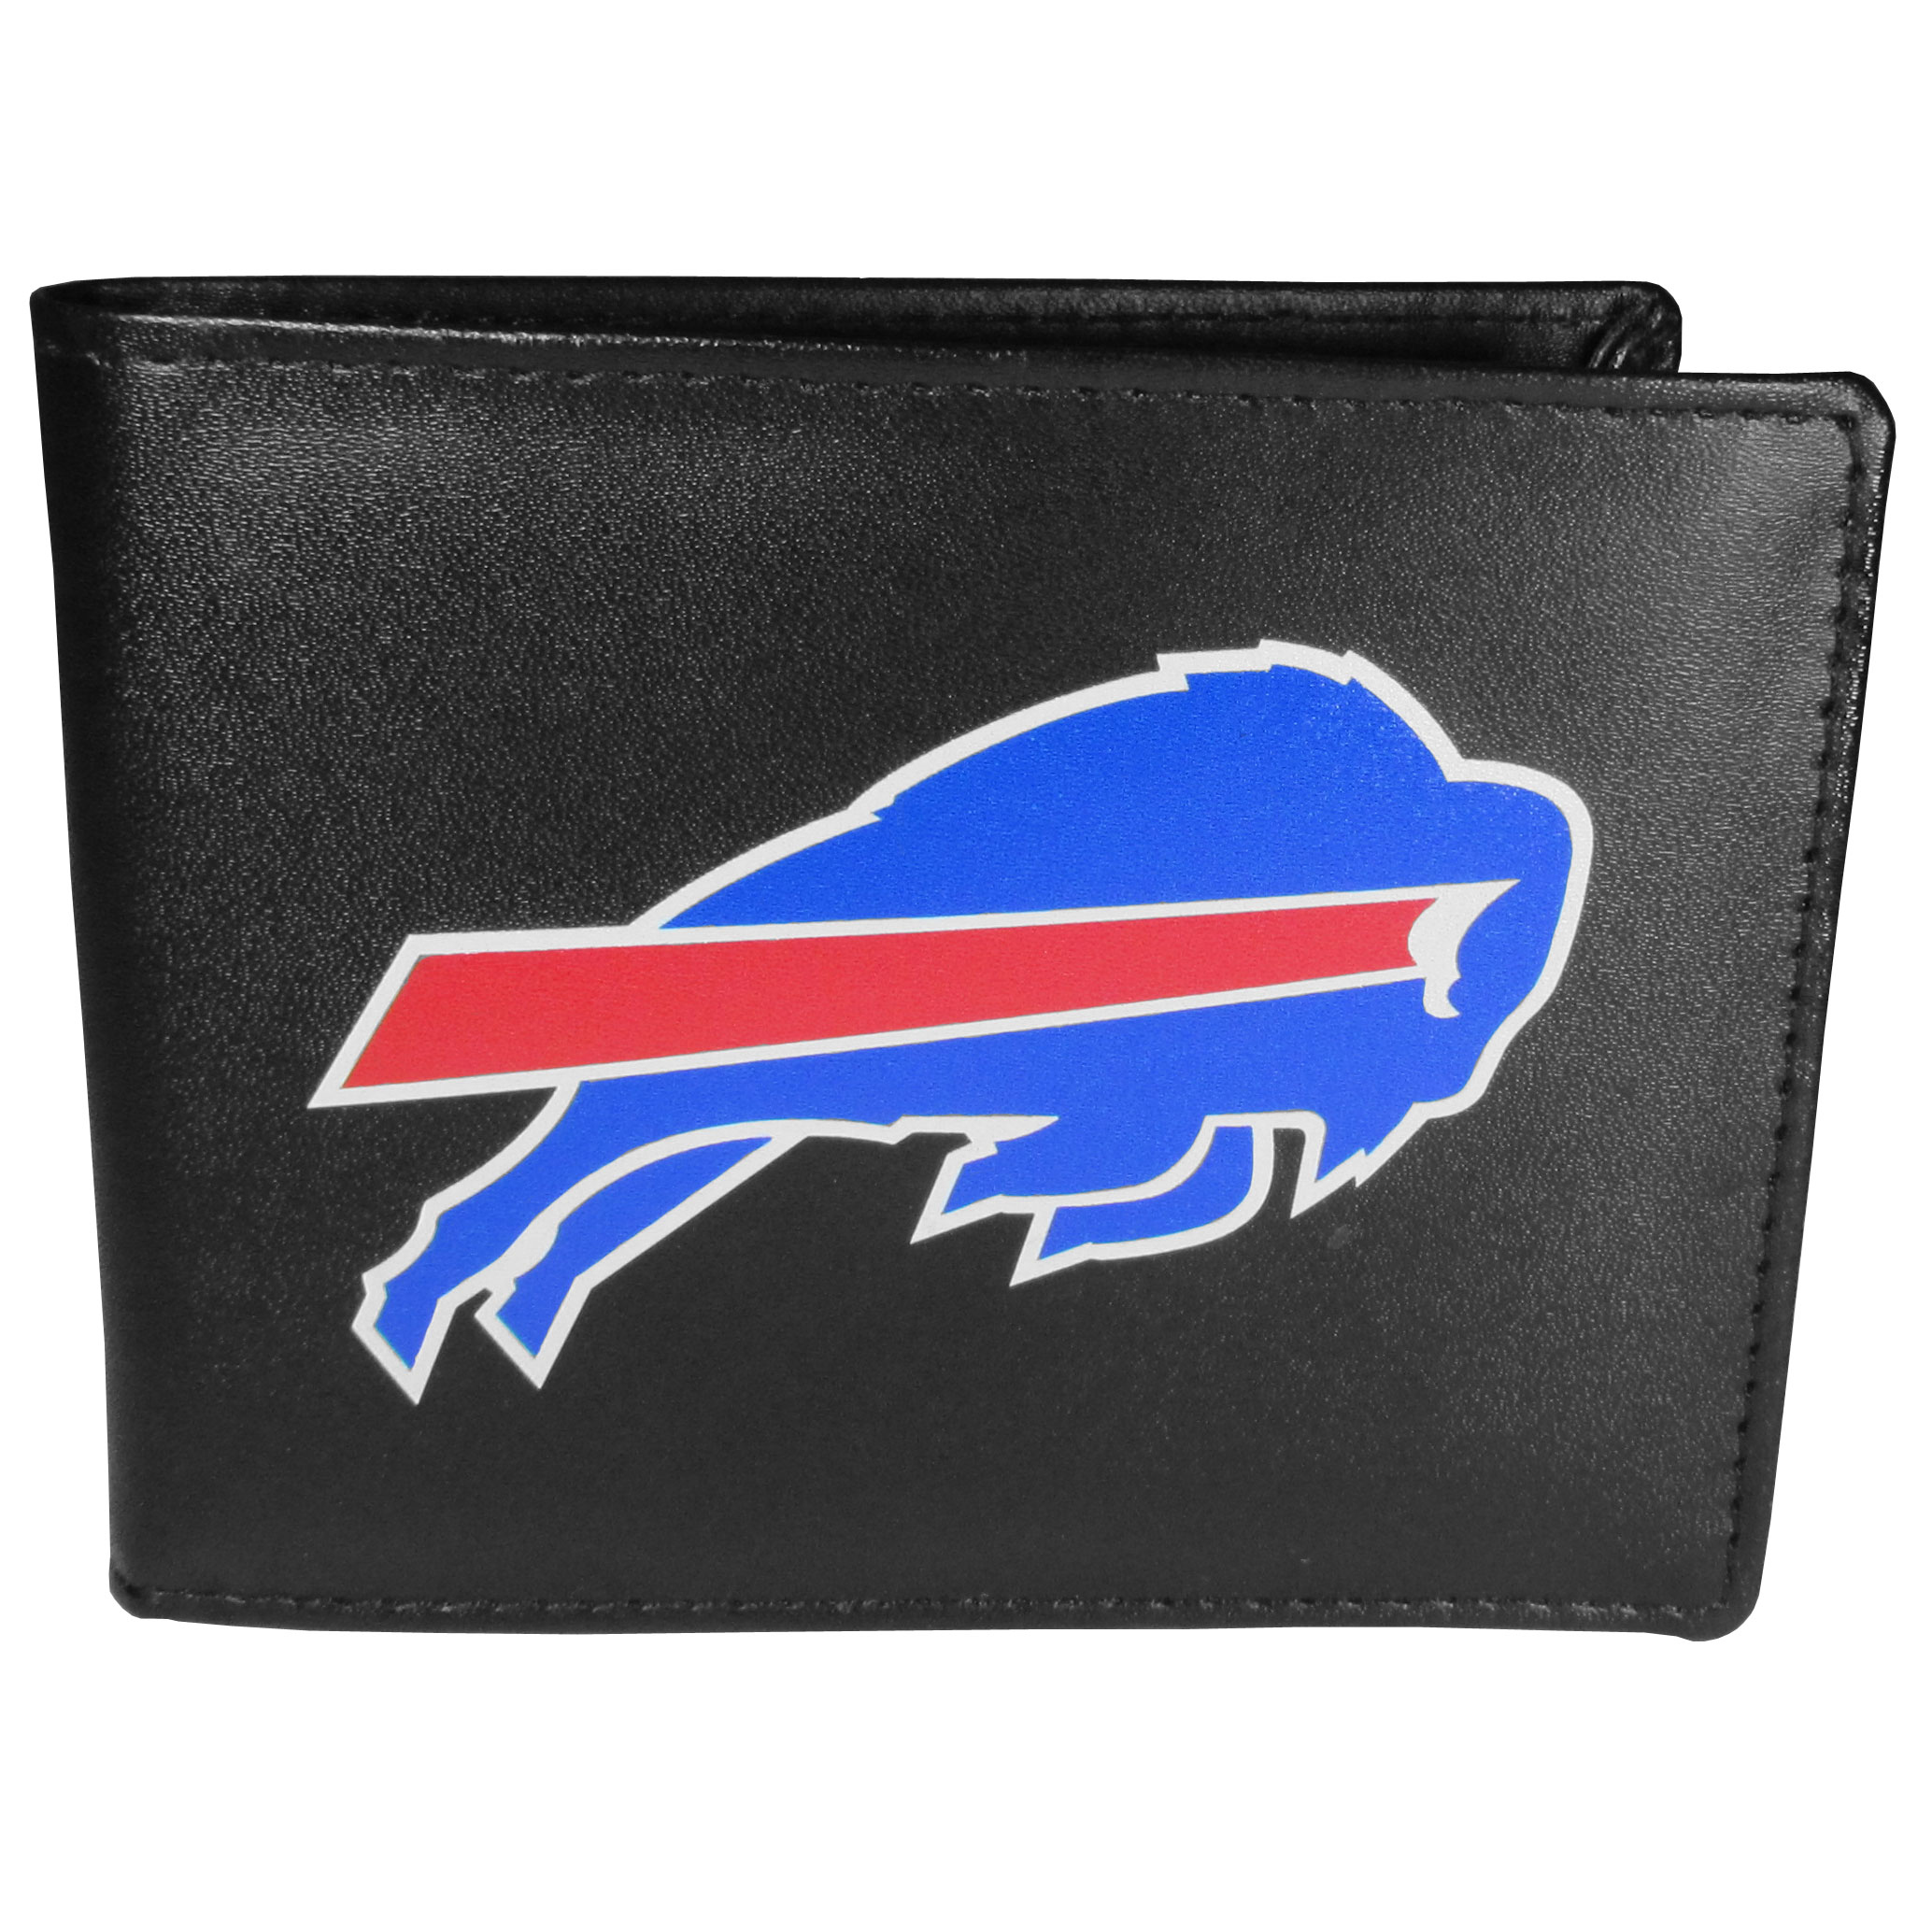 Buffalo Bills Leather Bi-fold Wallet, Large Logo - Our classic fine leather bi-fold wallet is meticulously crafted with genuine leather that will age beautifully so you will have a quality wallet for years to come. The wallet opens to a large, billfold pocket and numerous credit card slots and has a convenient windowed ID slot. The front of the wallet features an extra large Buffalo Bills printed logo.